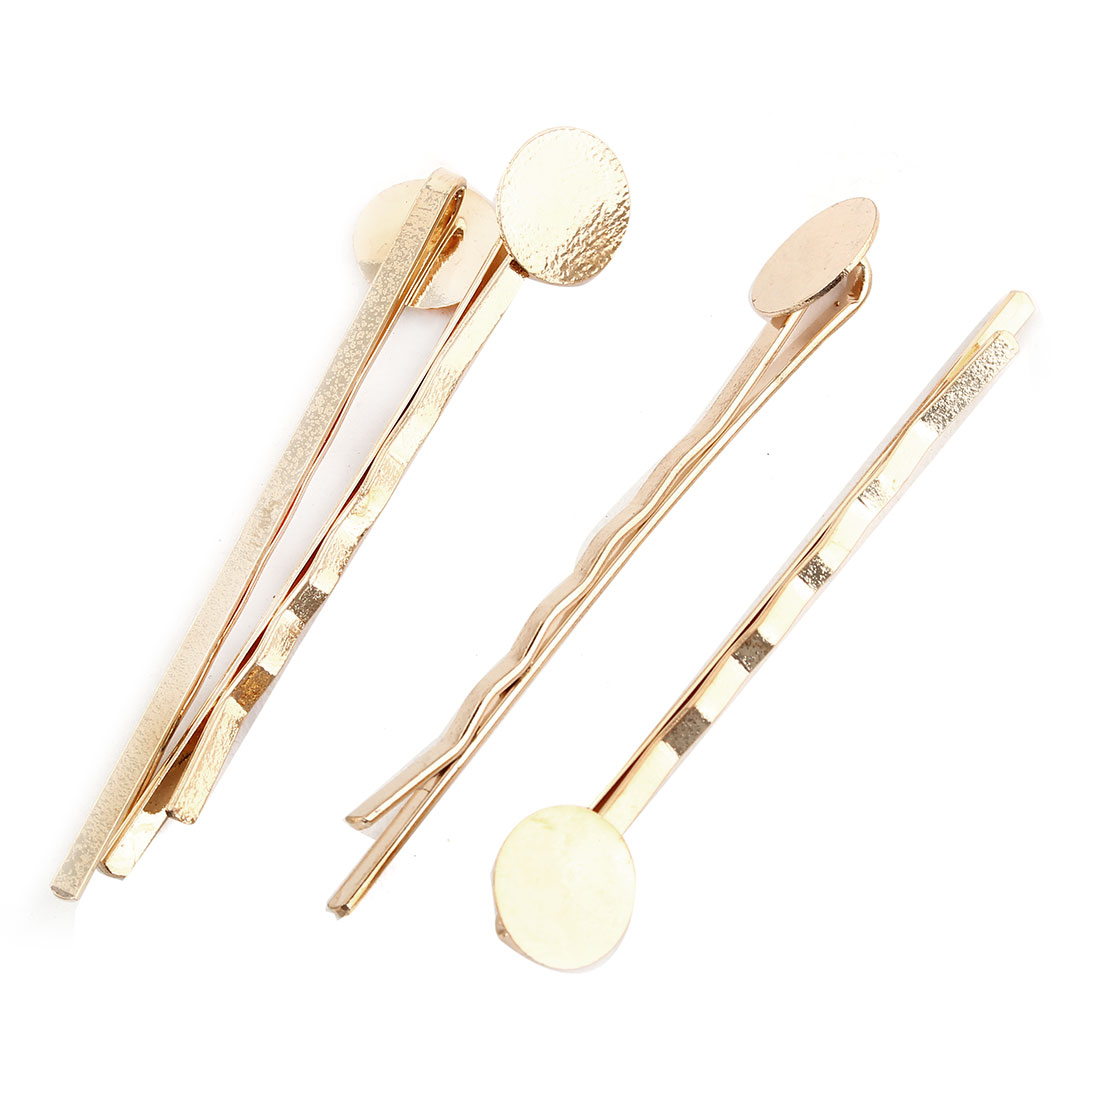 Unique BargainsWomen Hairdressing Barrette DIY Hairstyle Hair Clips Bobby Pin Gold Tone 4pcs